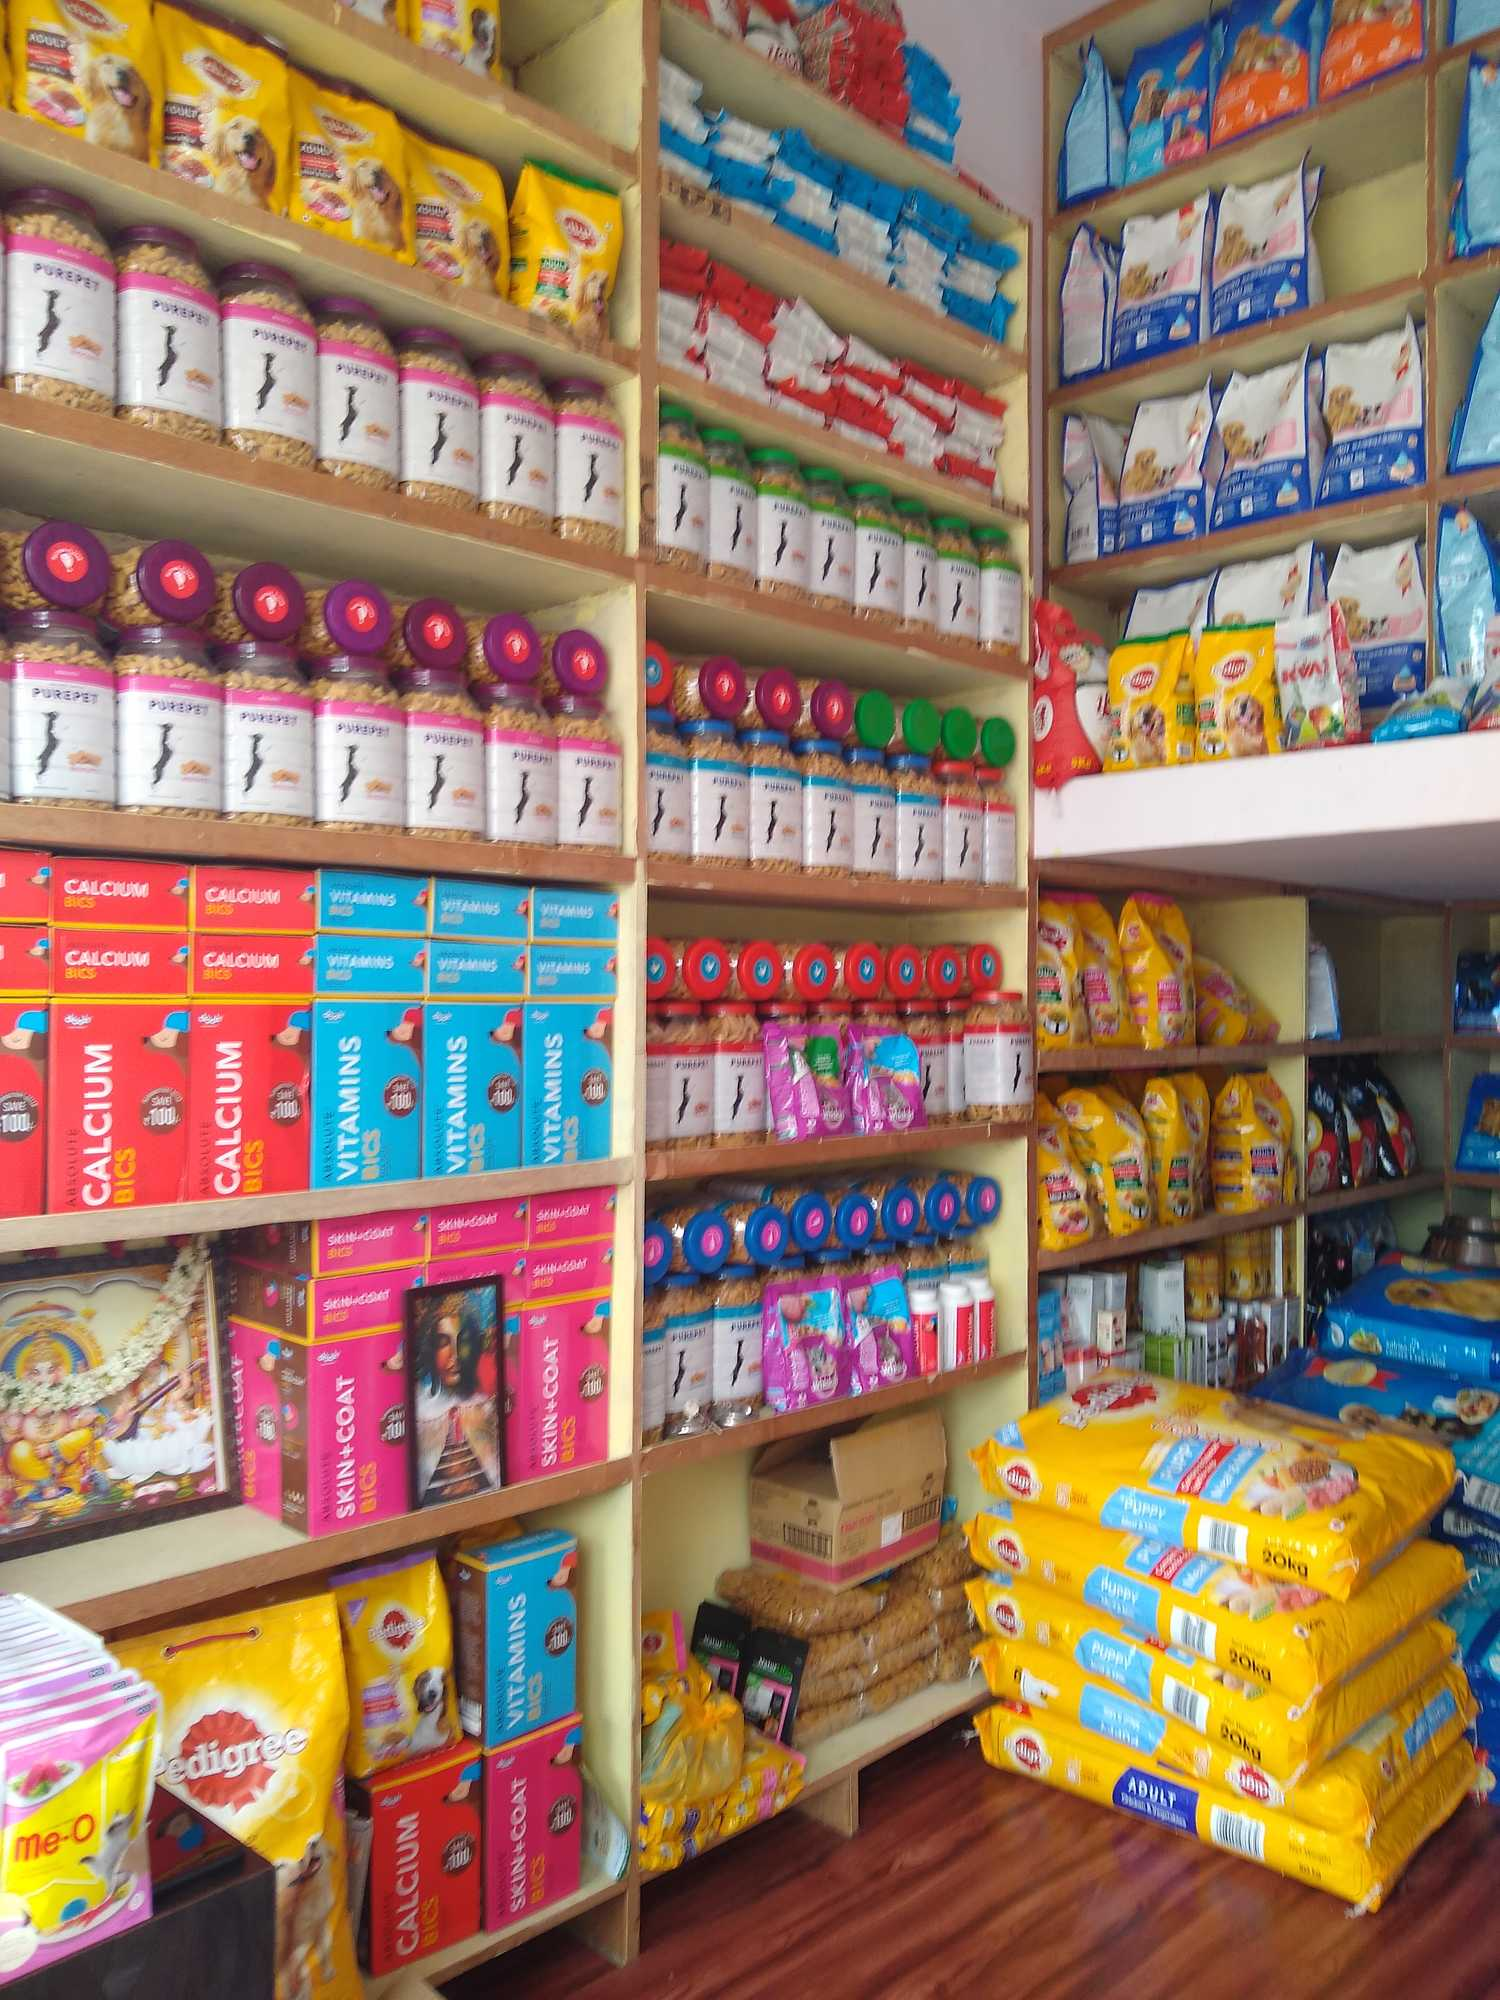 Top 50 Pet Shops For Dog in Mysore - Best Pet Store - Justdial